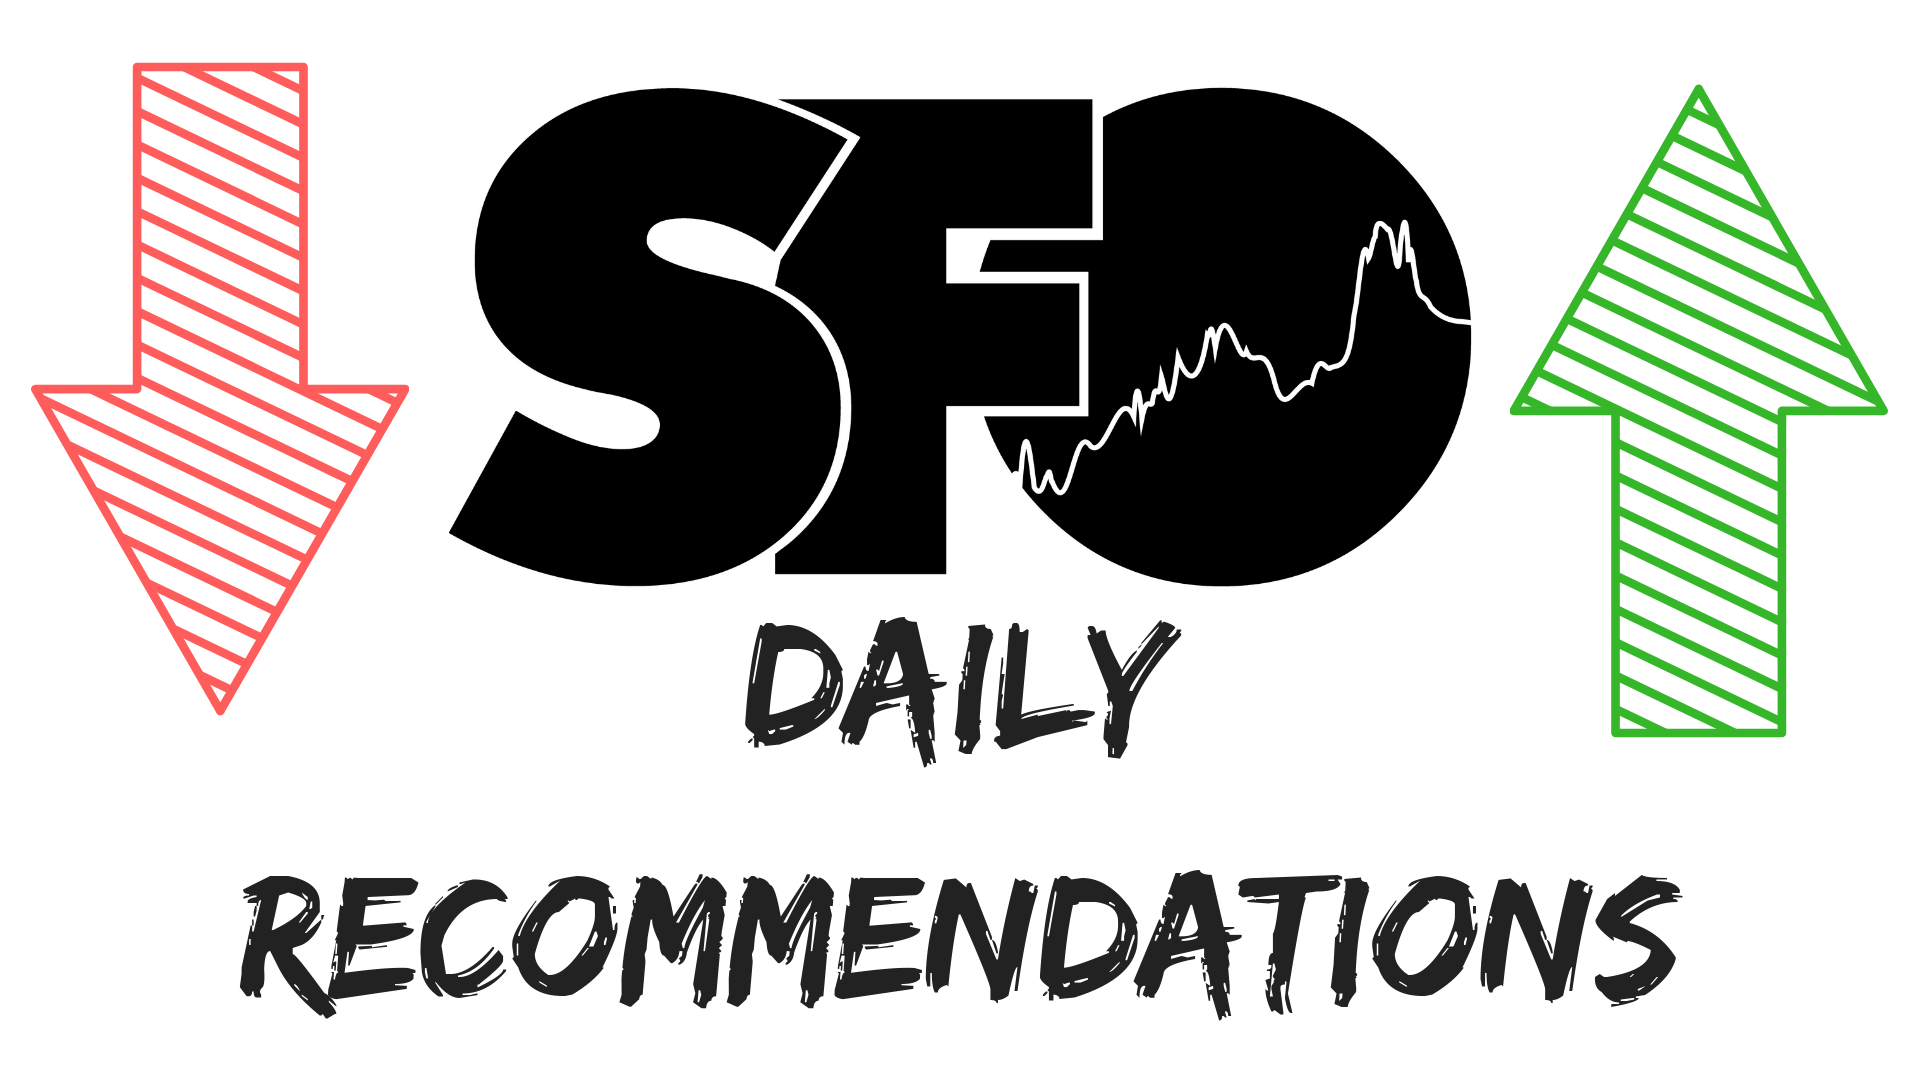 Daily Recommendations